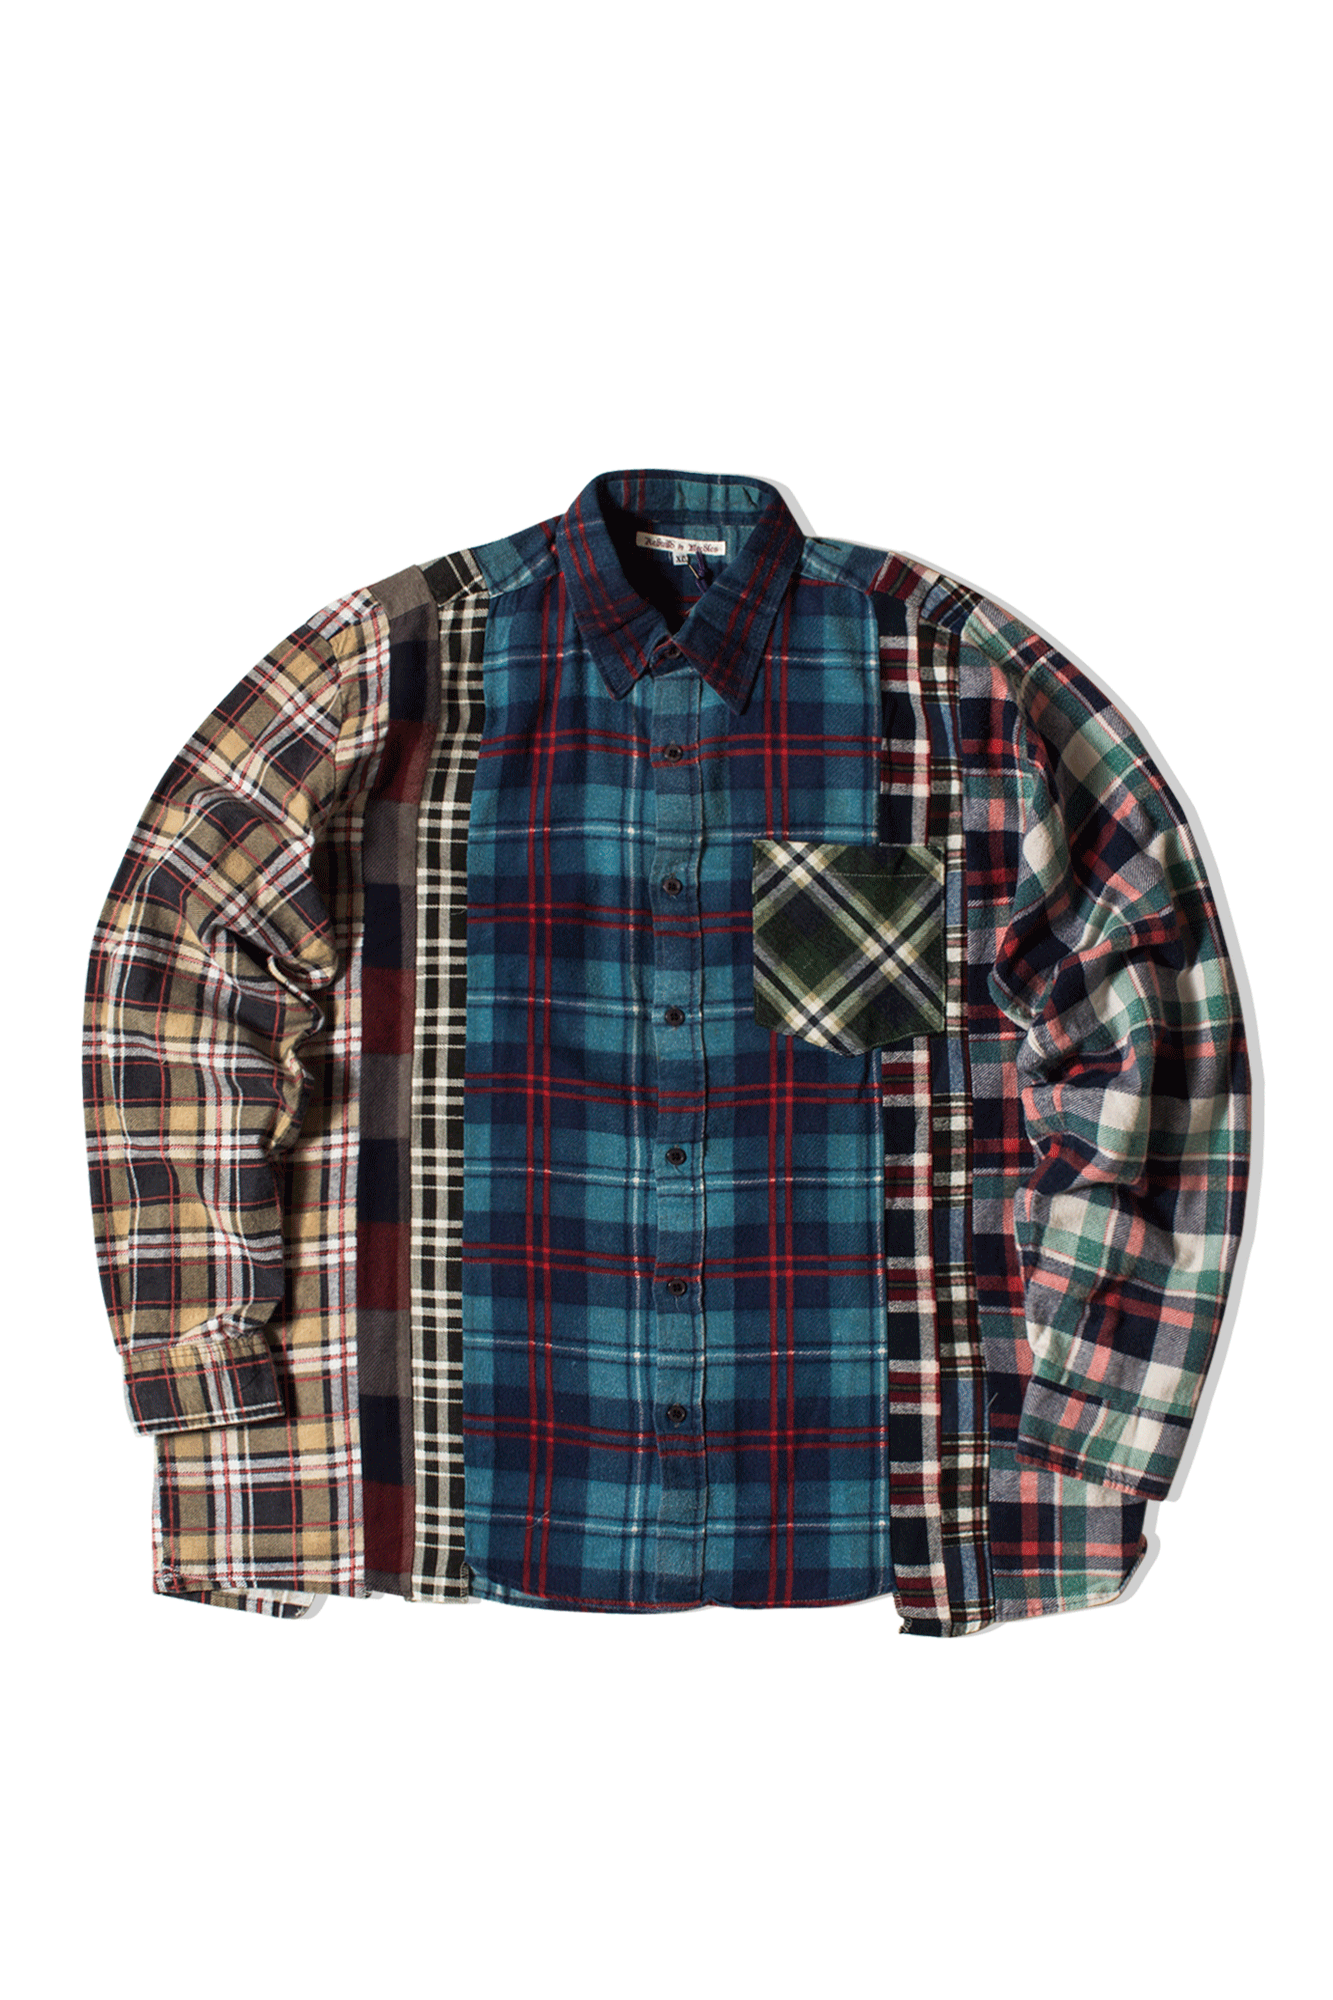 Needles Shirts 7 Cuts Flannel Shirt Multicolor IN240-XL#000#MLT#XL - One Block Down